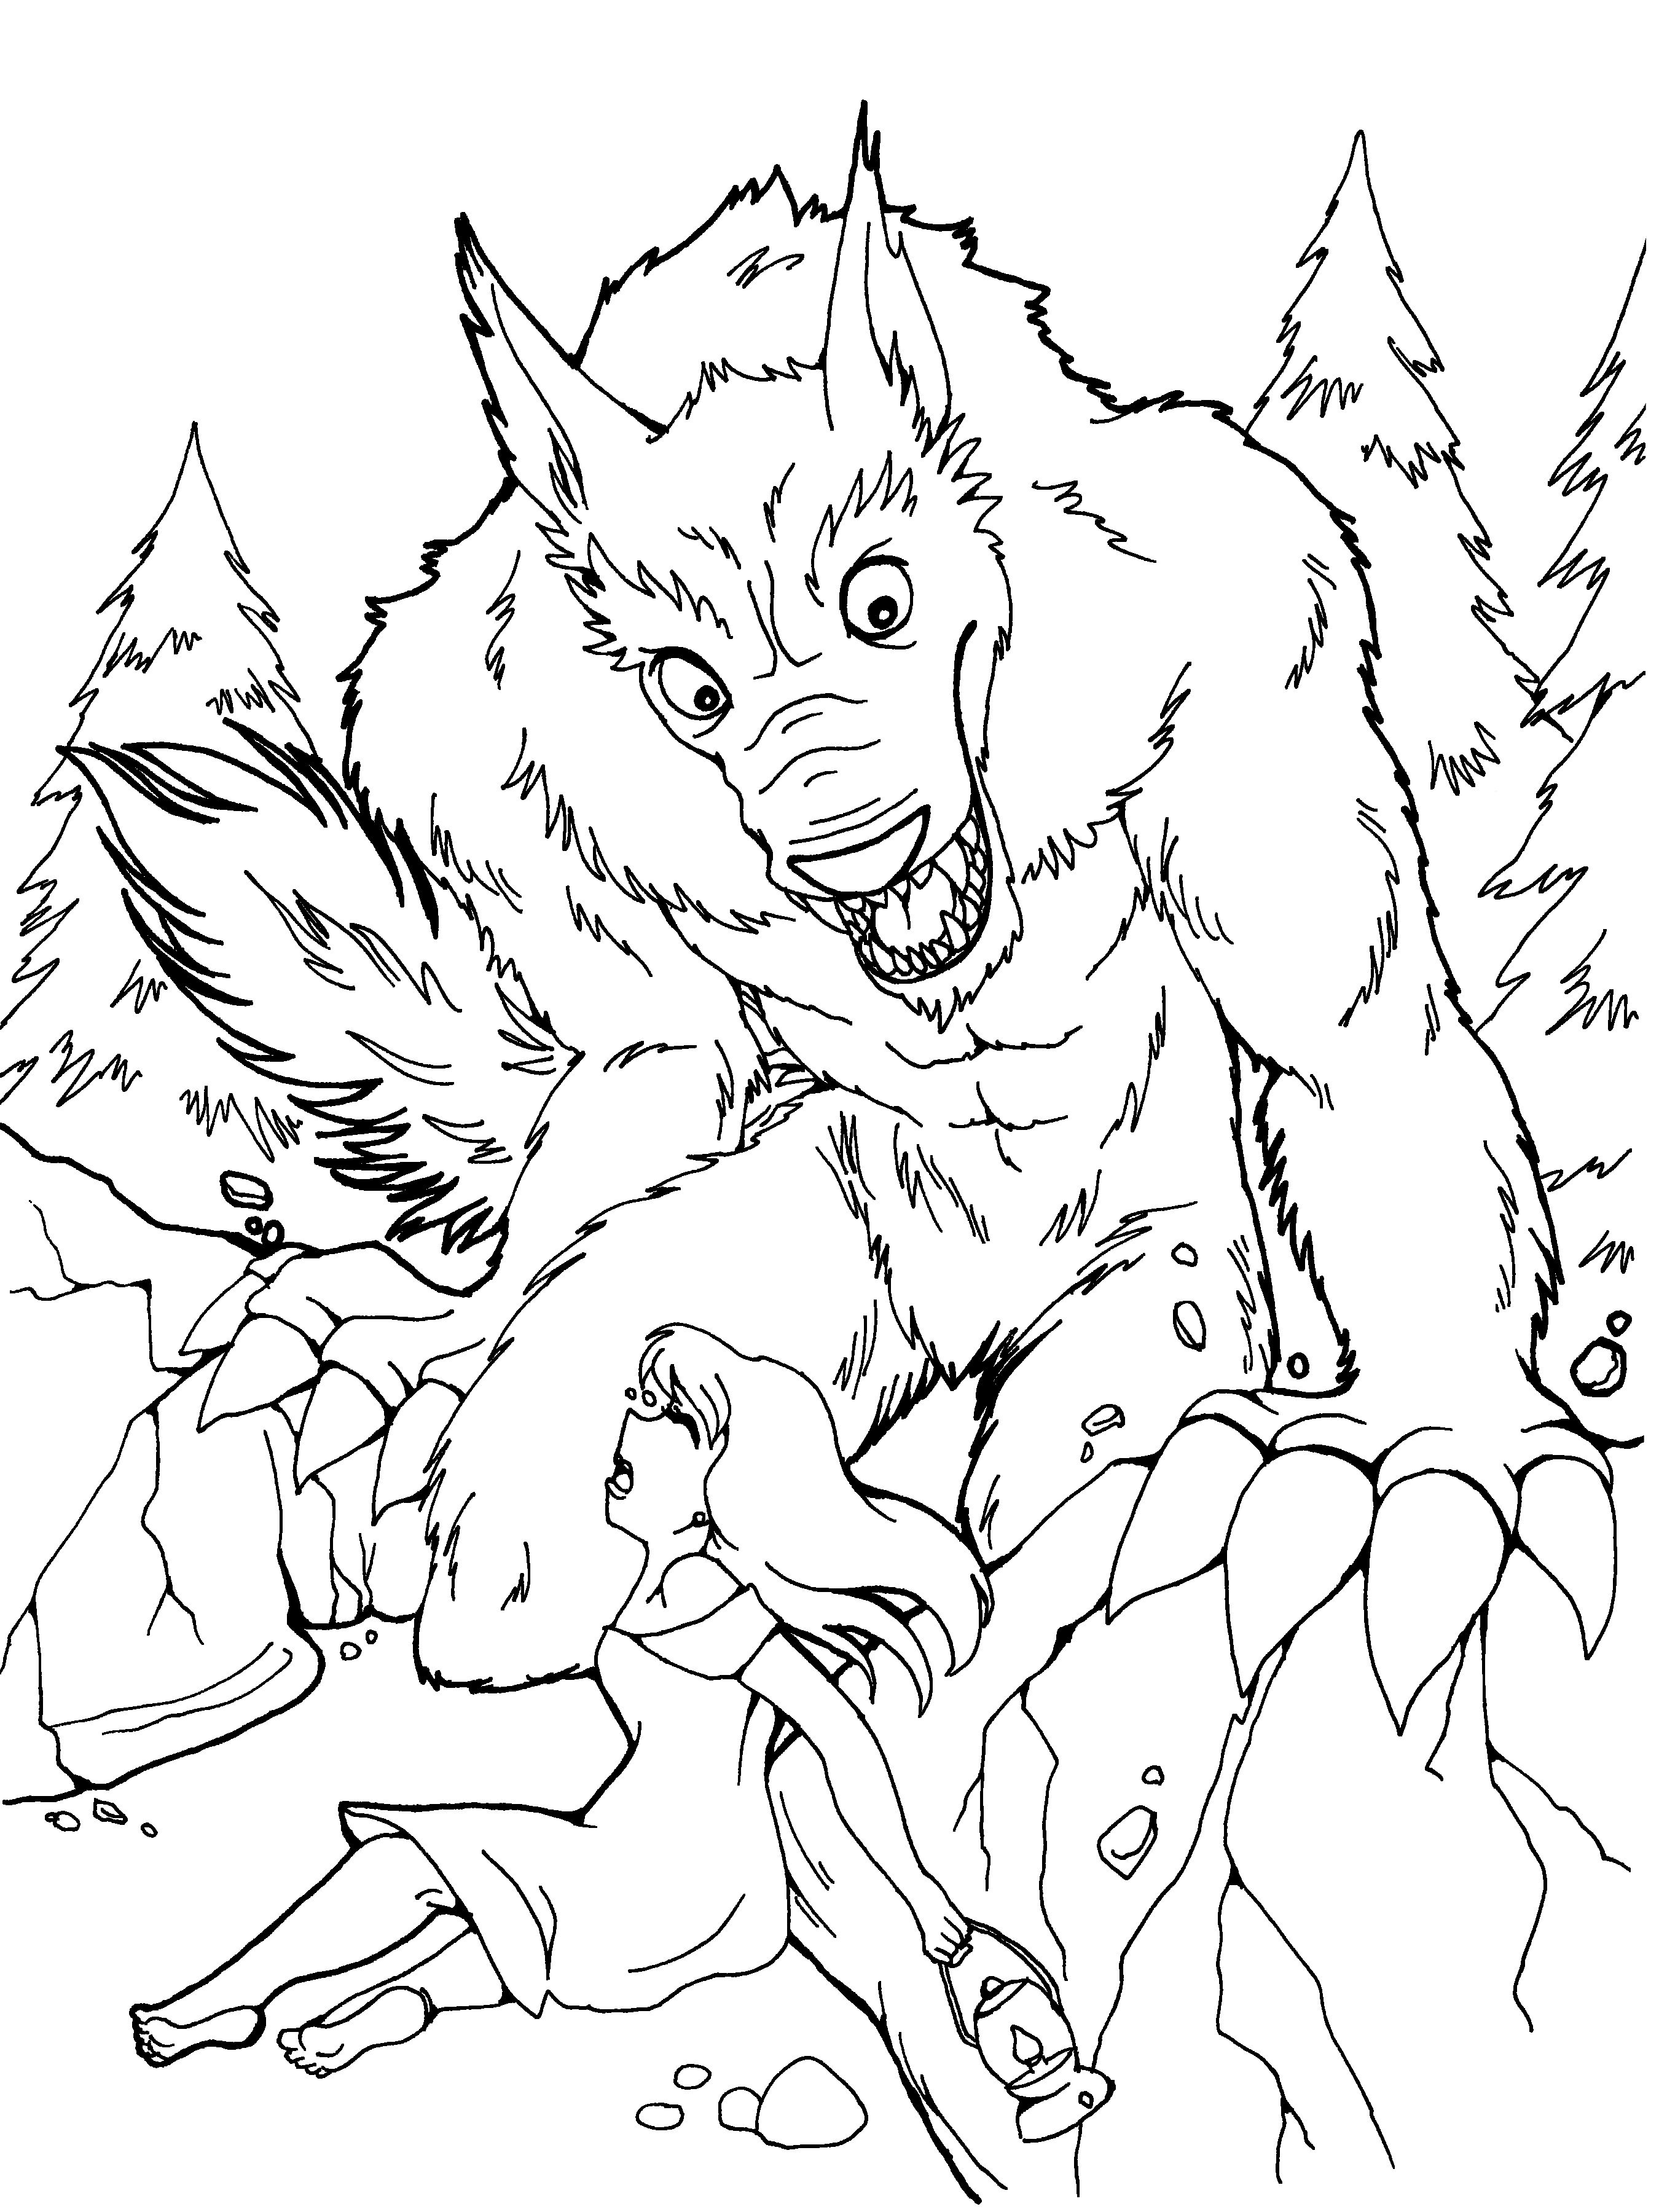 free werewolf coloring page. get more pages to color at